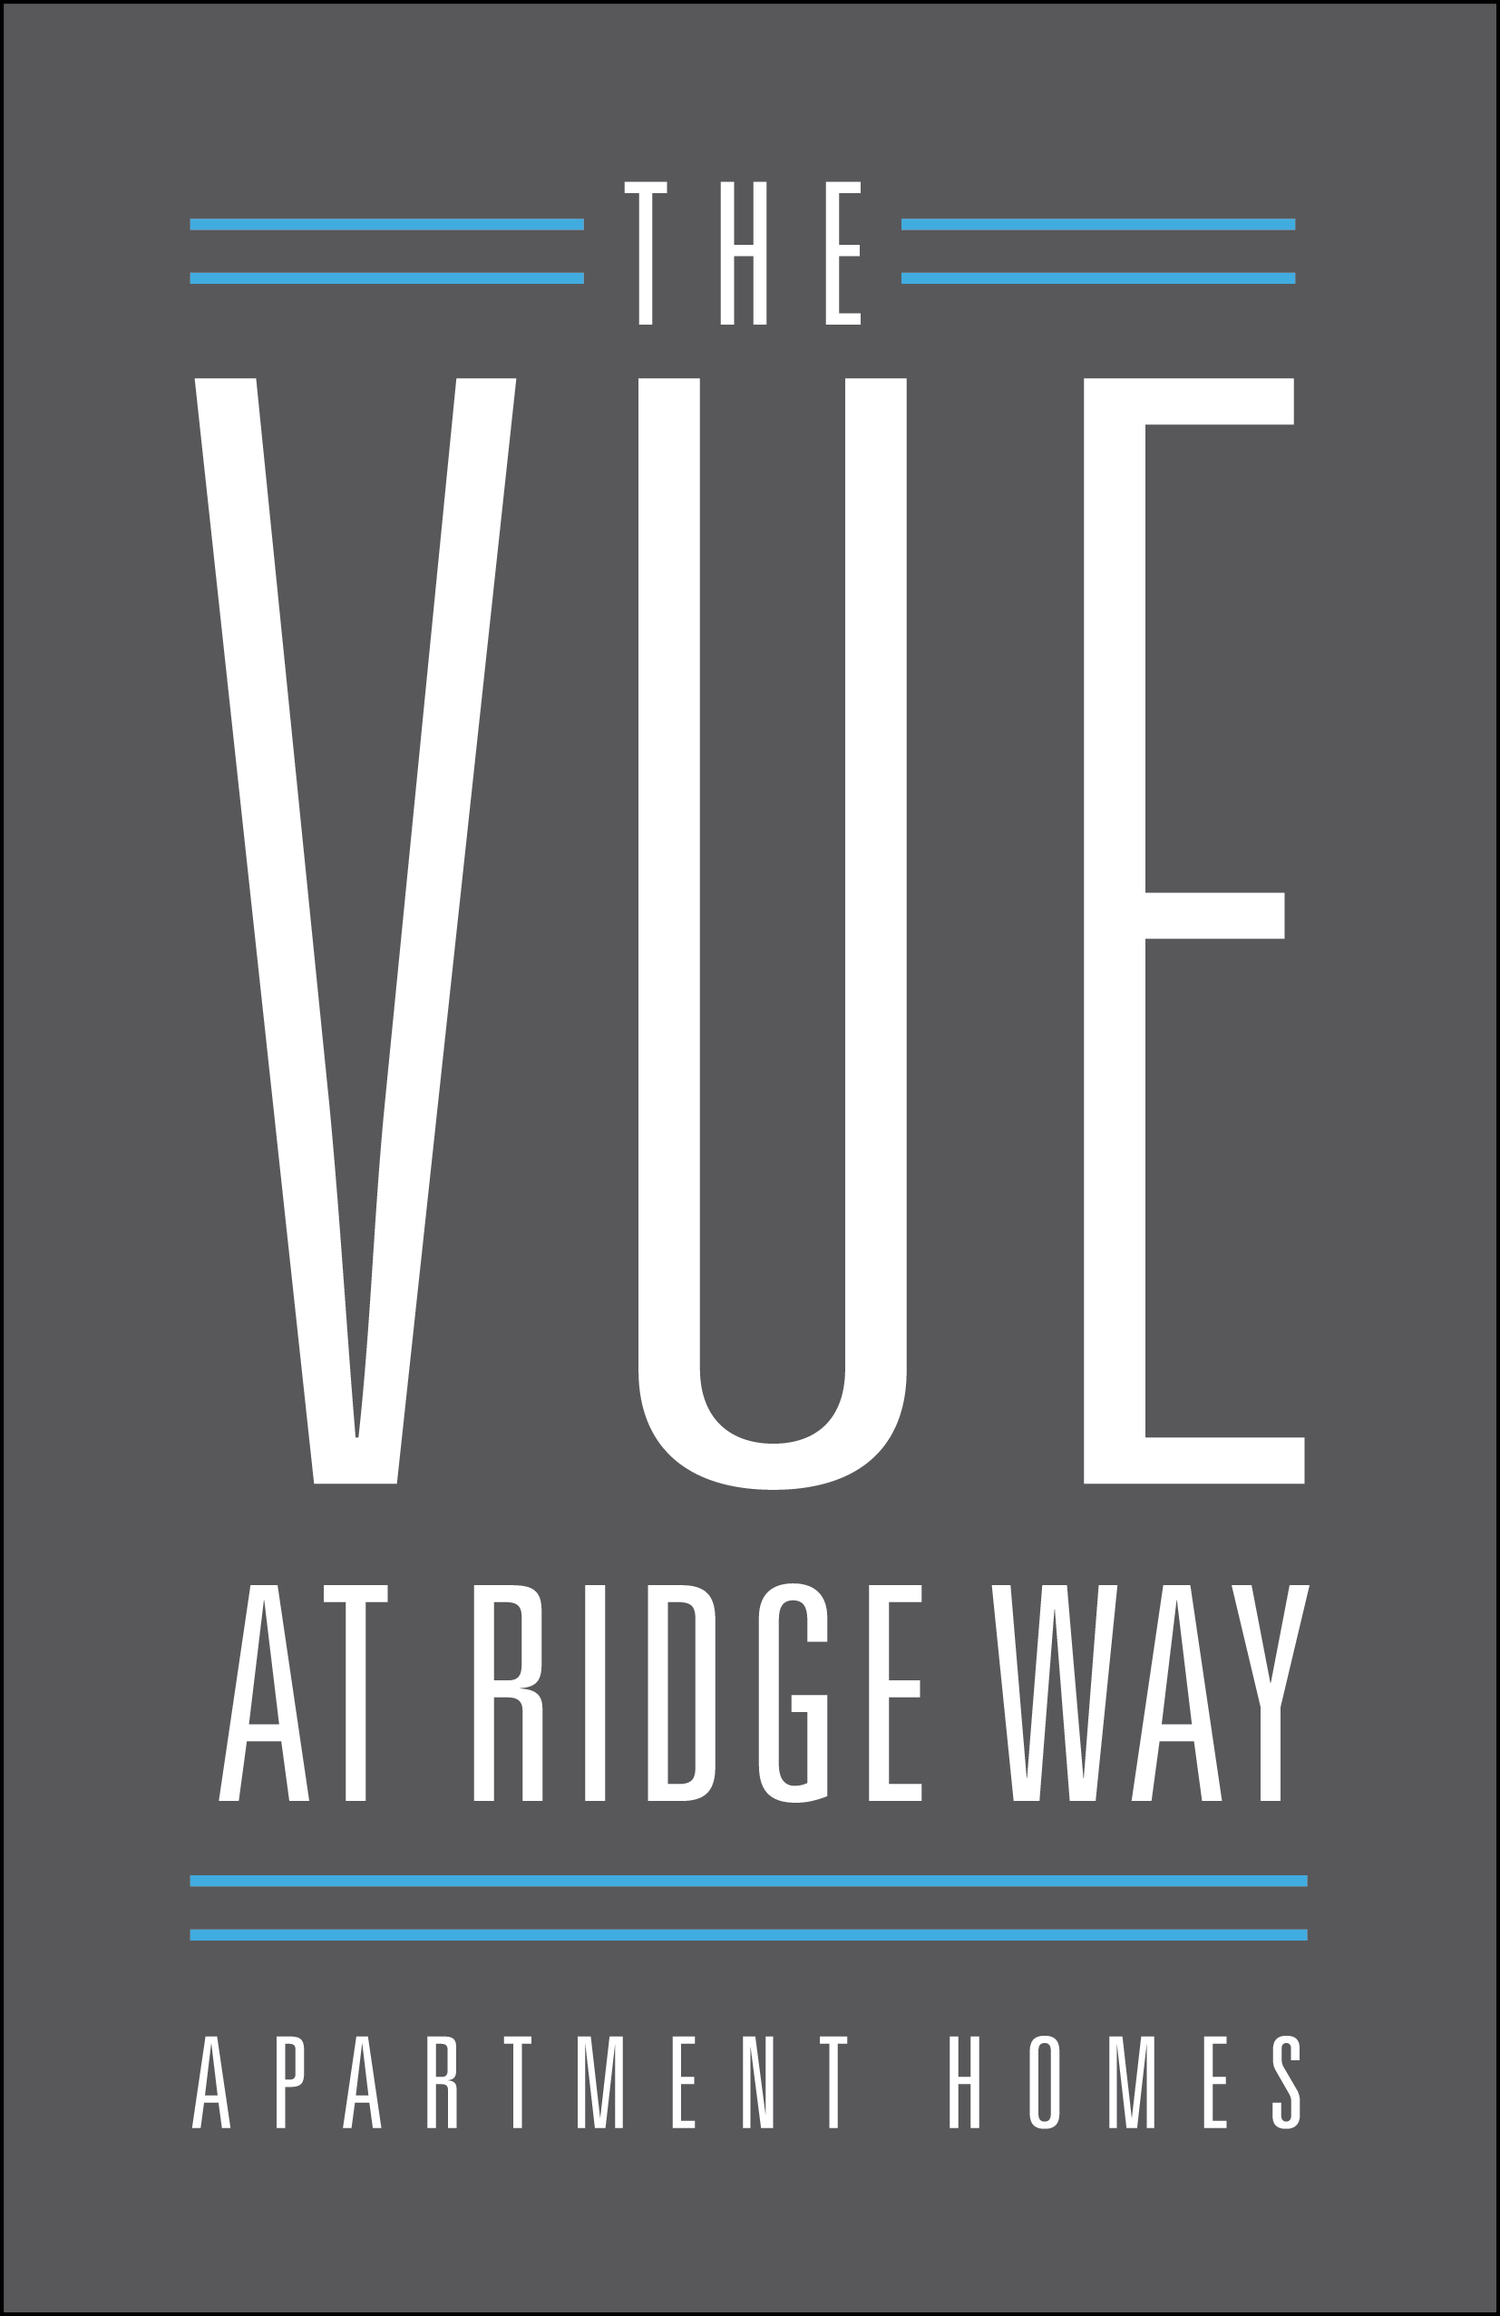 The Vue at Ridge Way